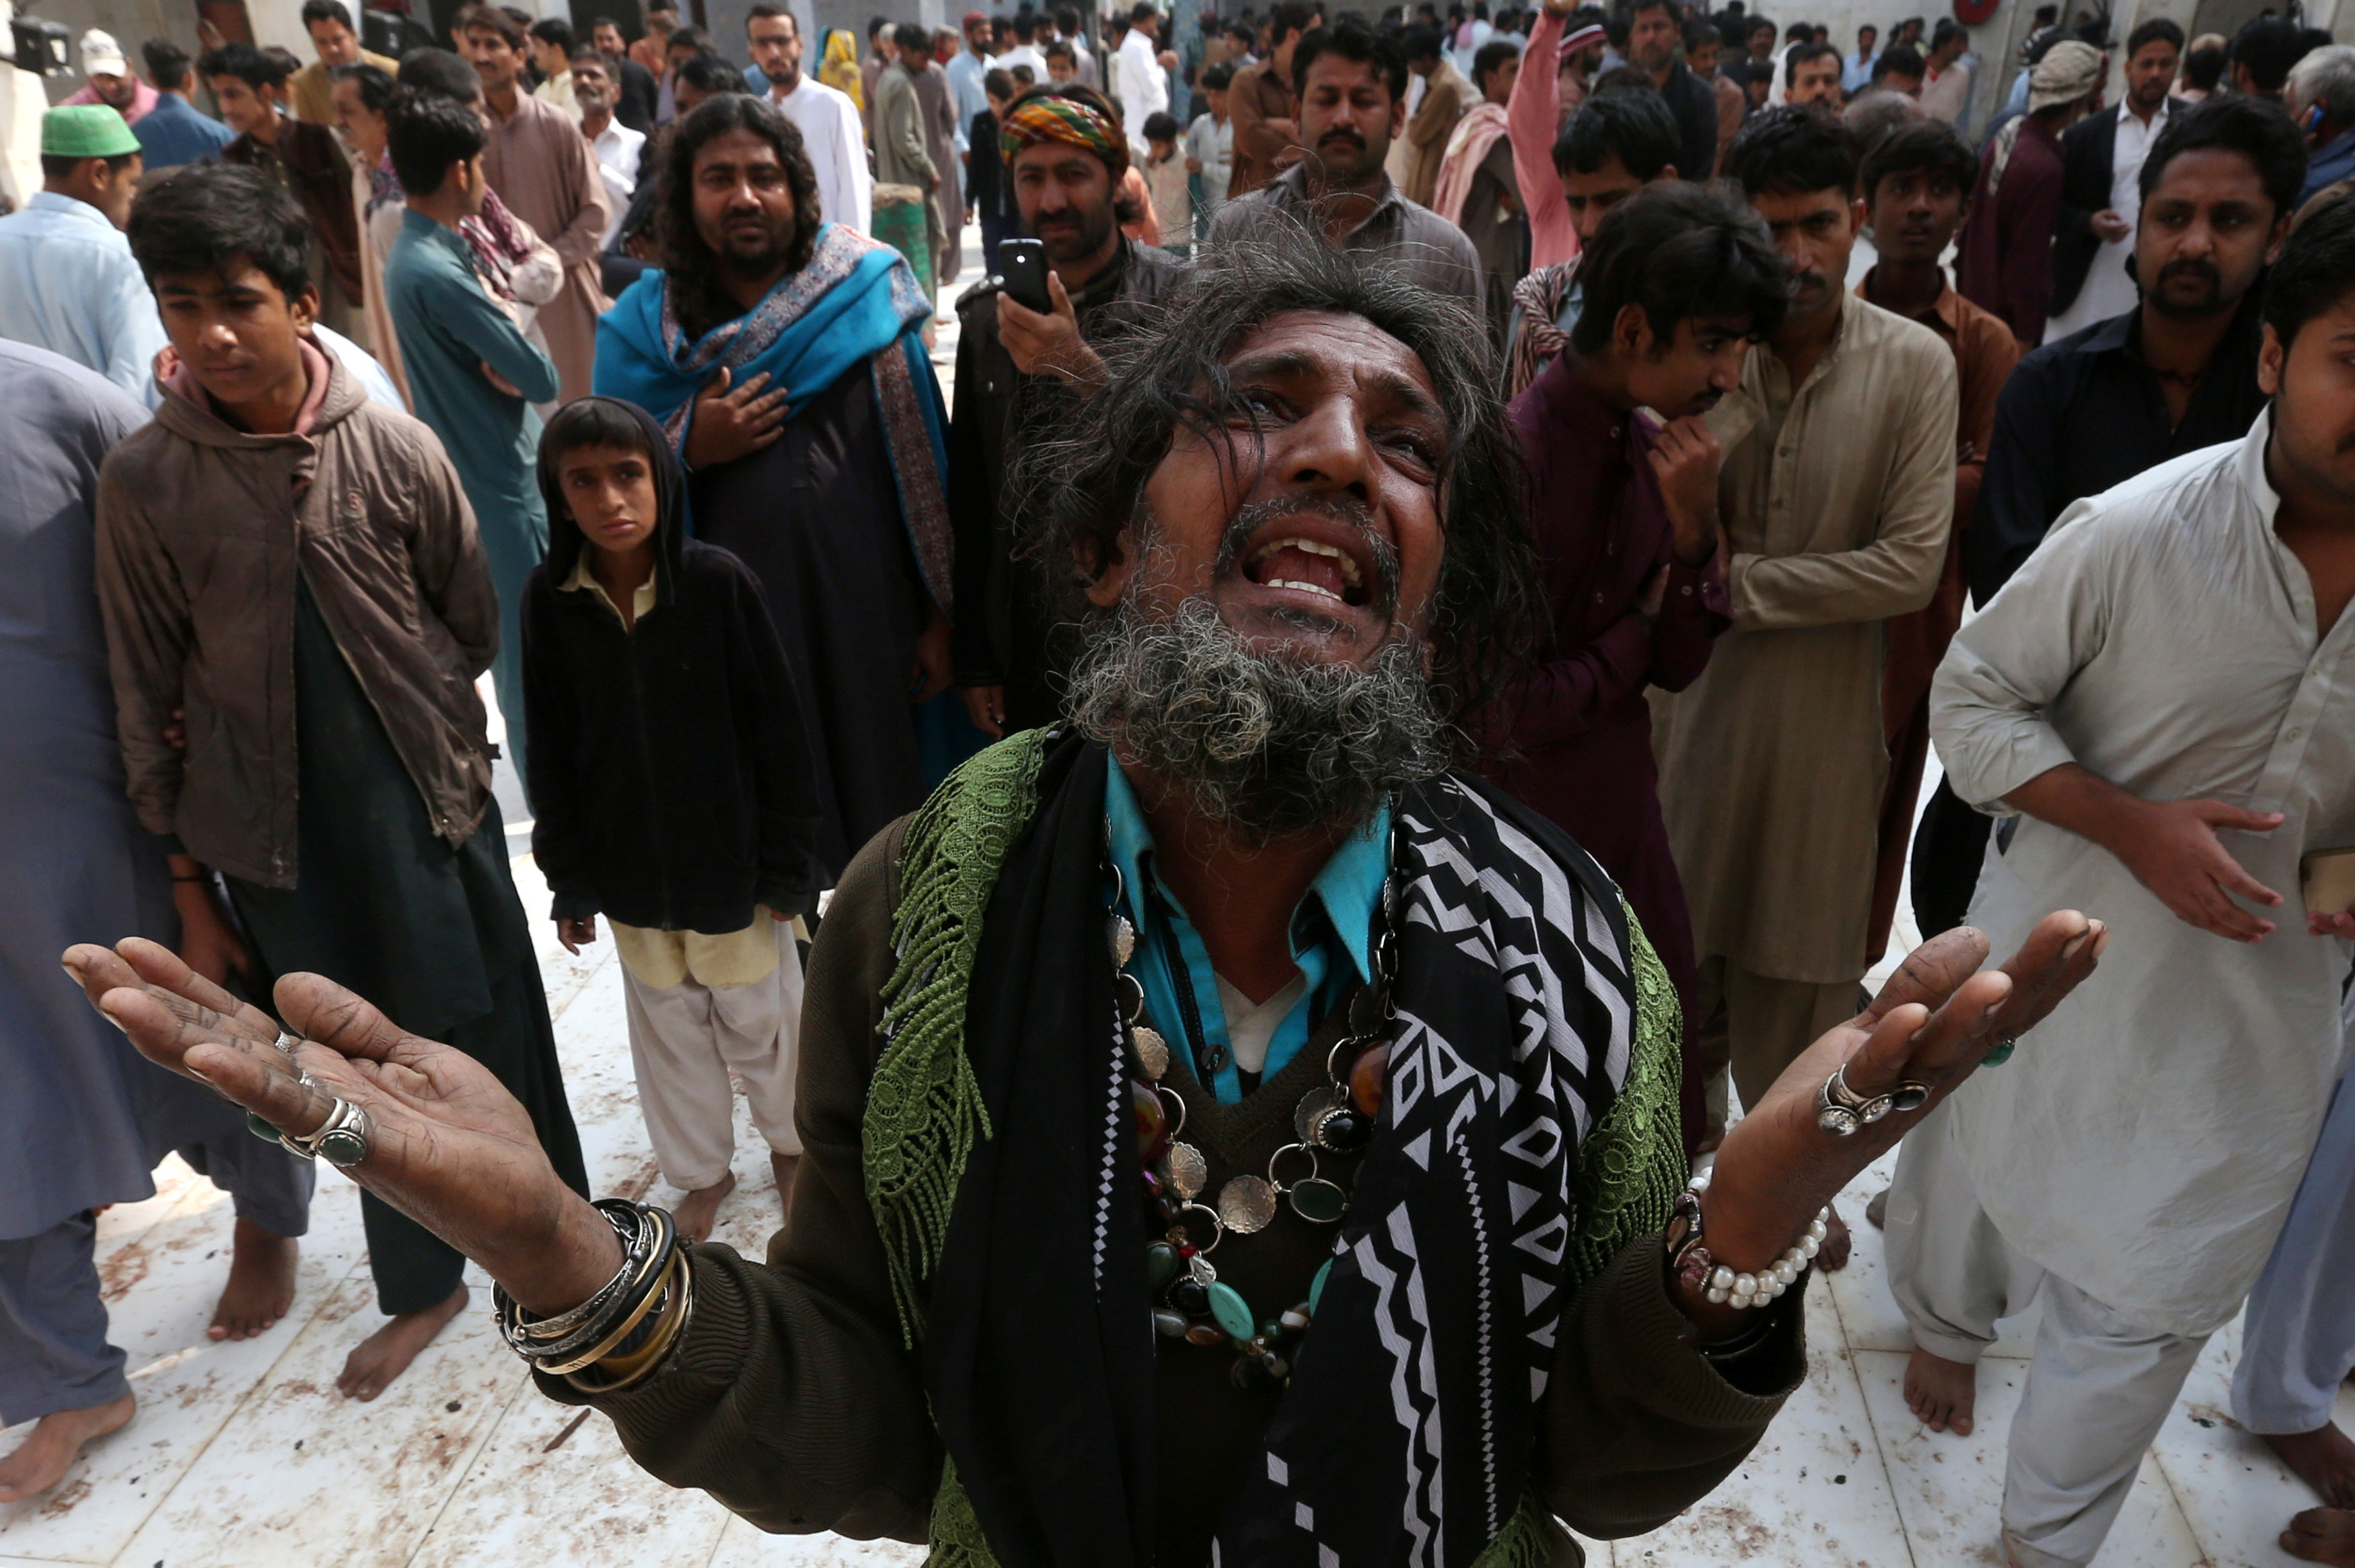 A man mourns the death of a relative who was killed in a suicide blast at the tomb of Sufi saint Syed Usman Marwandi, also known as the Lal Shahbaz Qalandar shrine, on Thursday evening in Sehwan Sharif, Pakistan's southern Sindh province, February 17, 2017. Credit: REUTERS/Akhtar Soomro